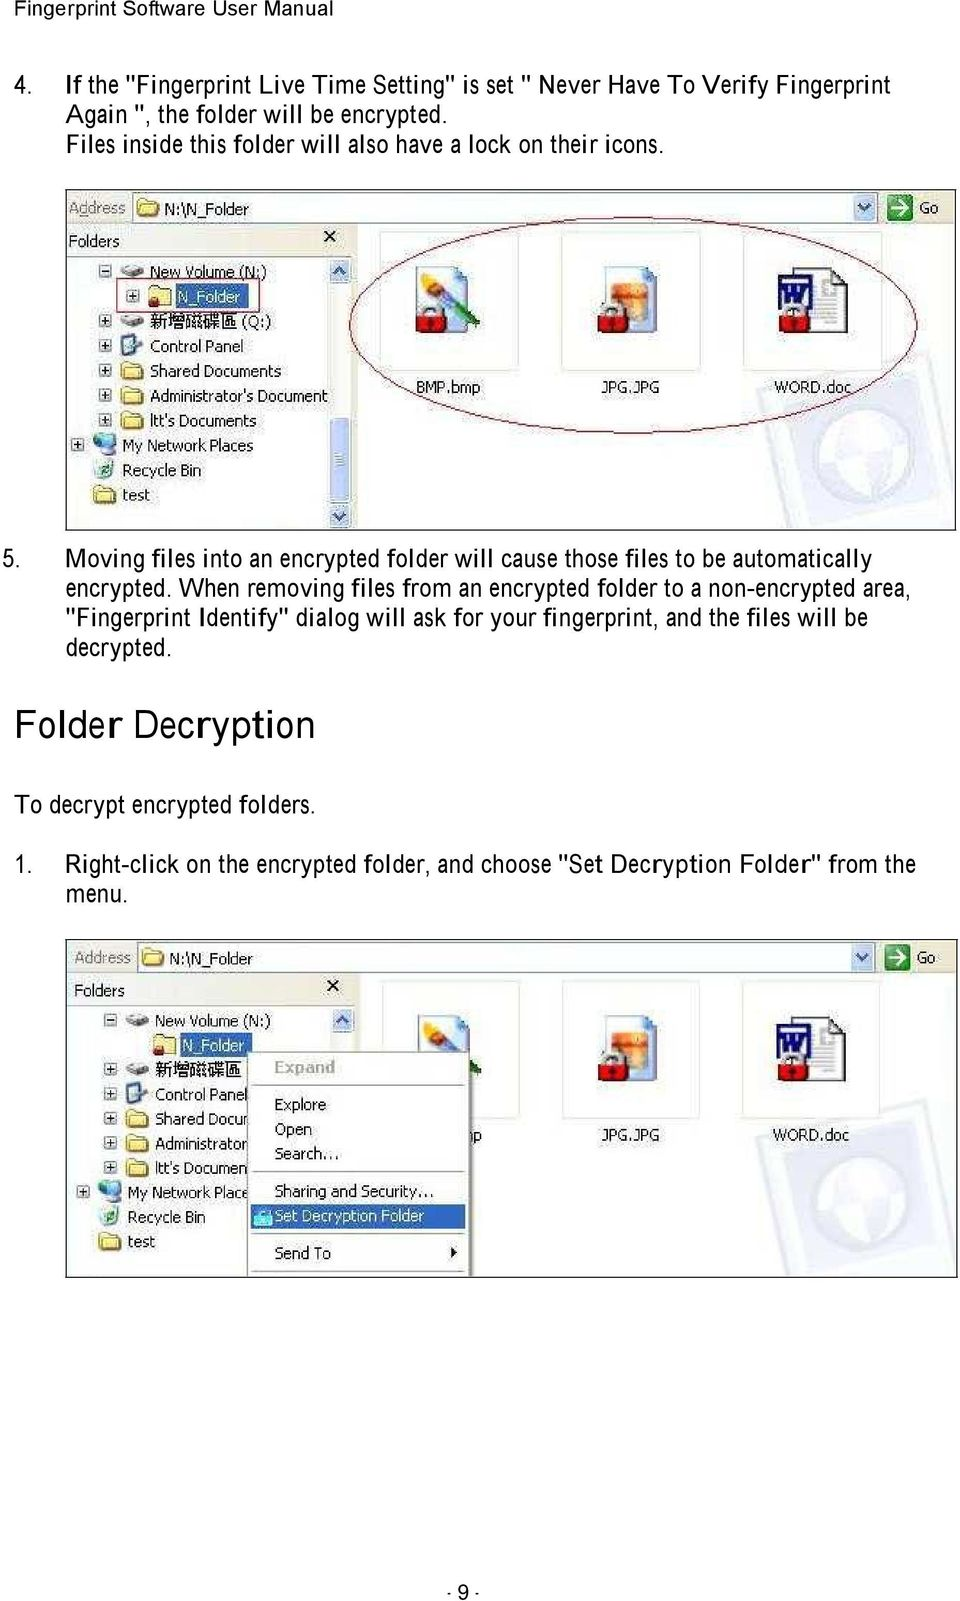 Moving files into an encrypted folder will cause those files to be automatically encrypted.